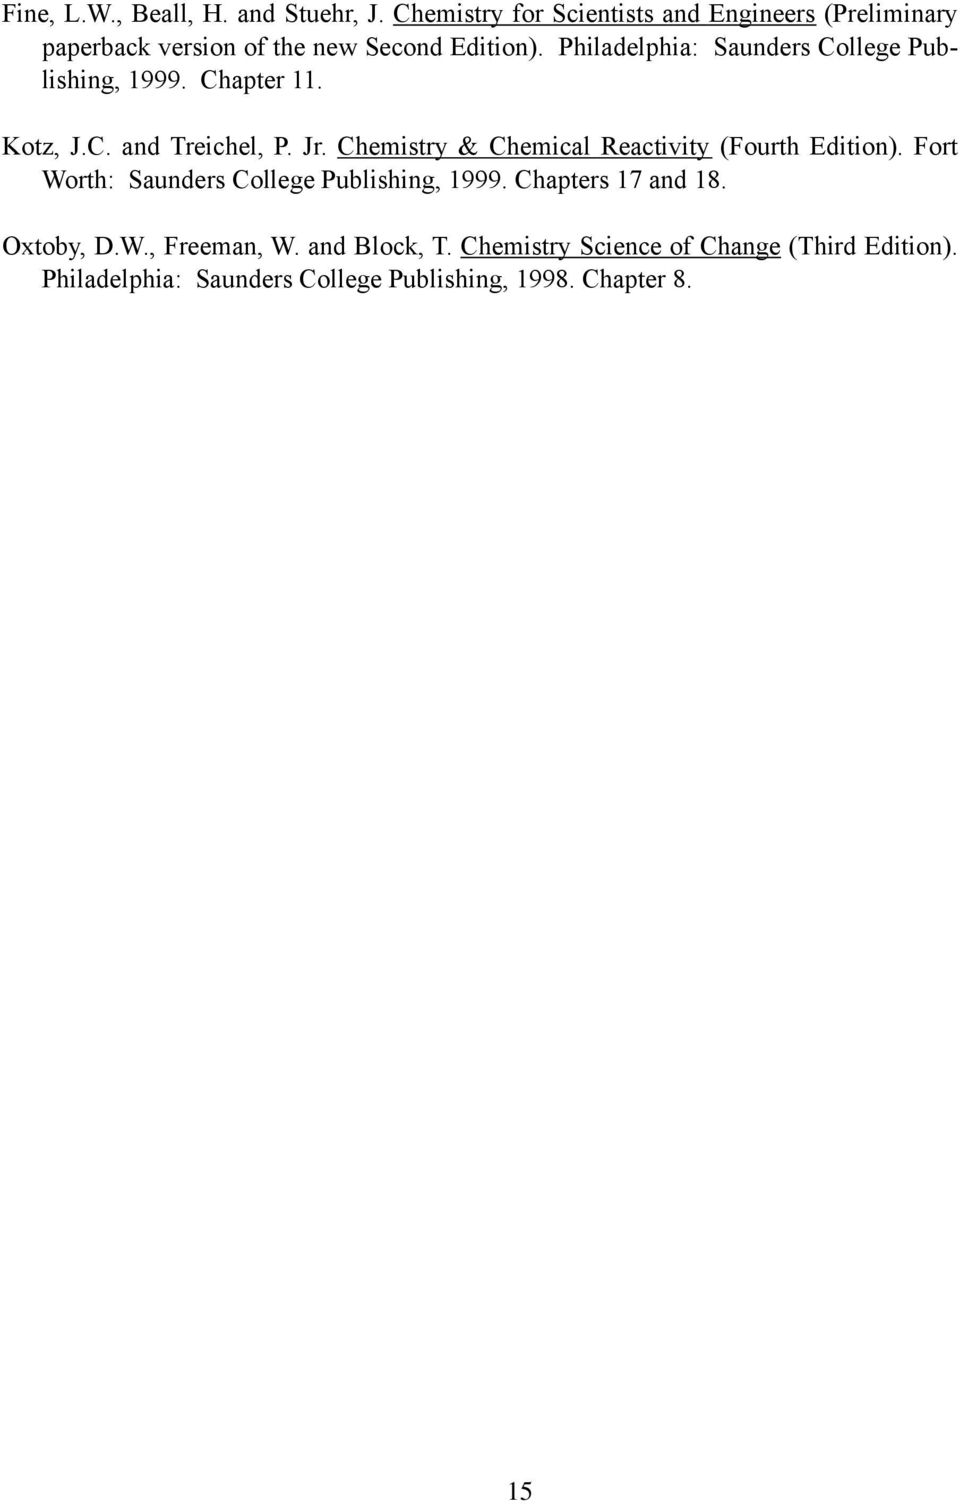 Philadelphia: Saunders College Publishing, 1999. Chapter 11. Kotz, J.C. and Treichel, P. Jr.